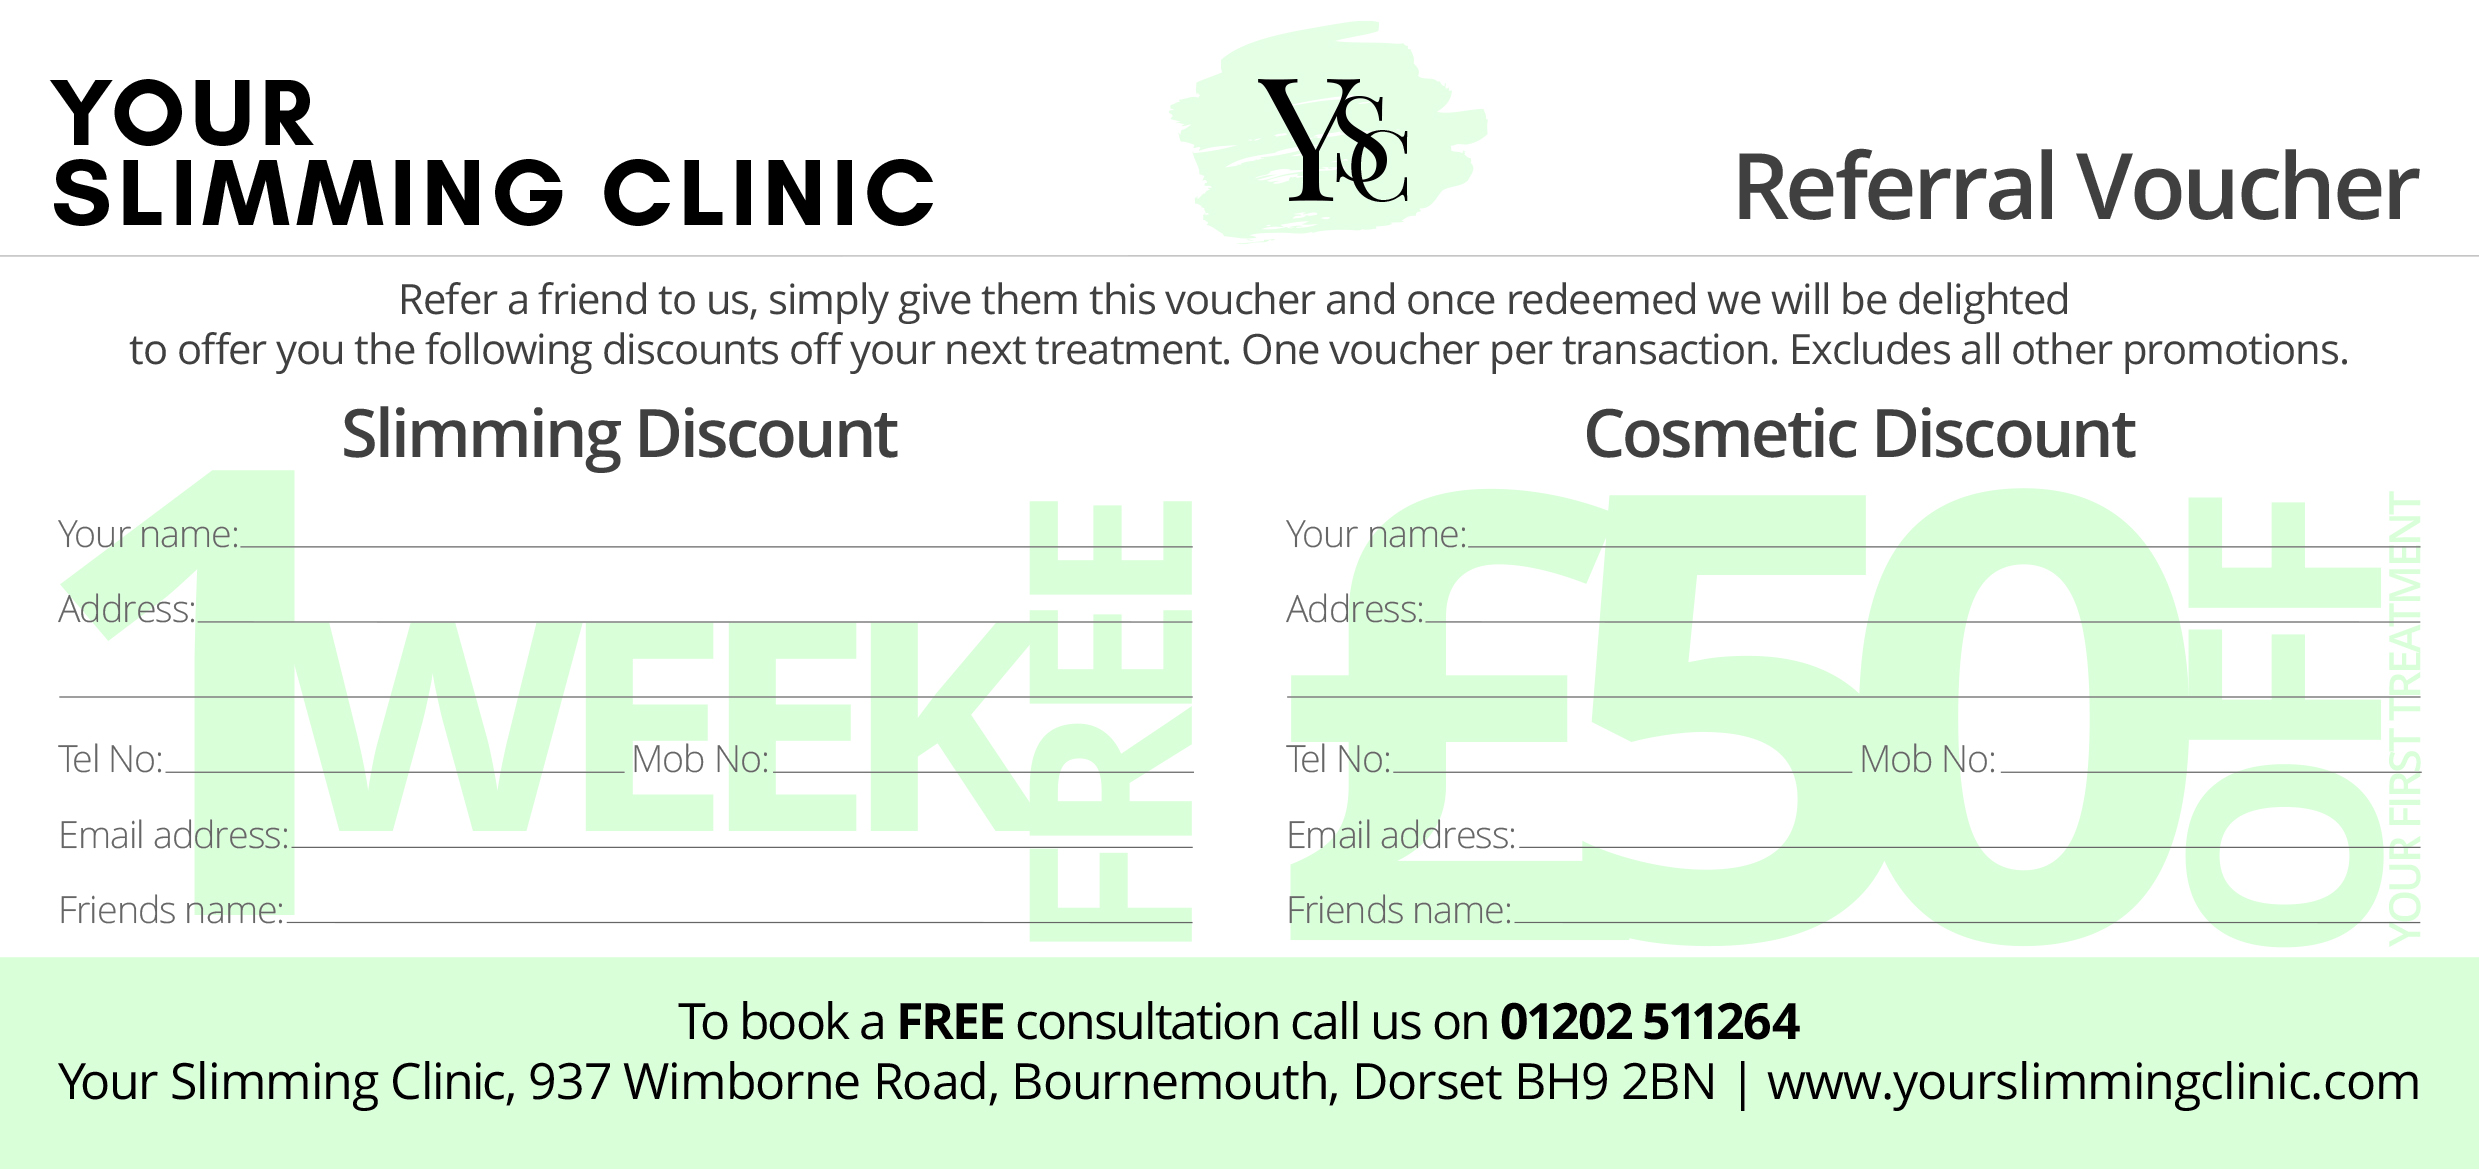 Your Slimming Clinic Bournemouth